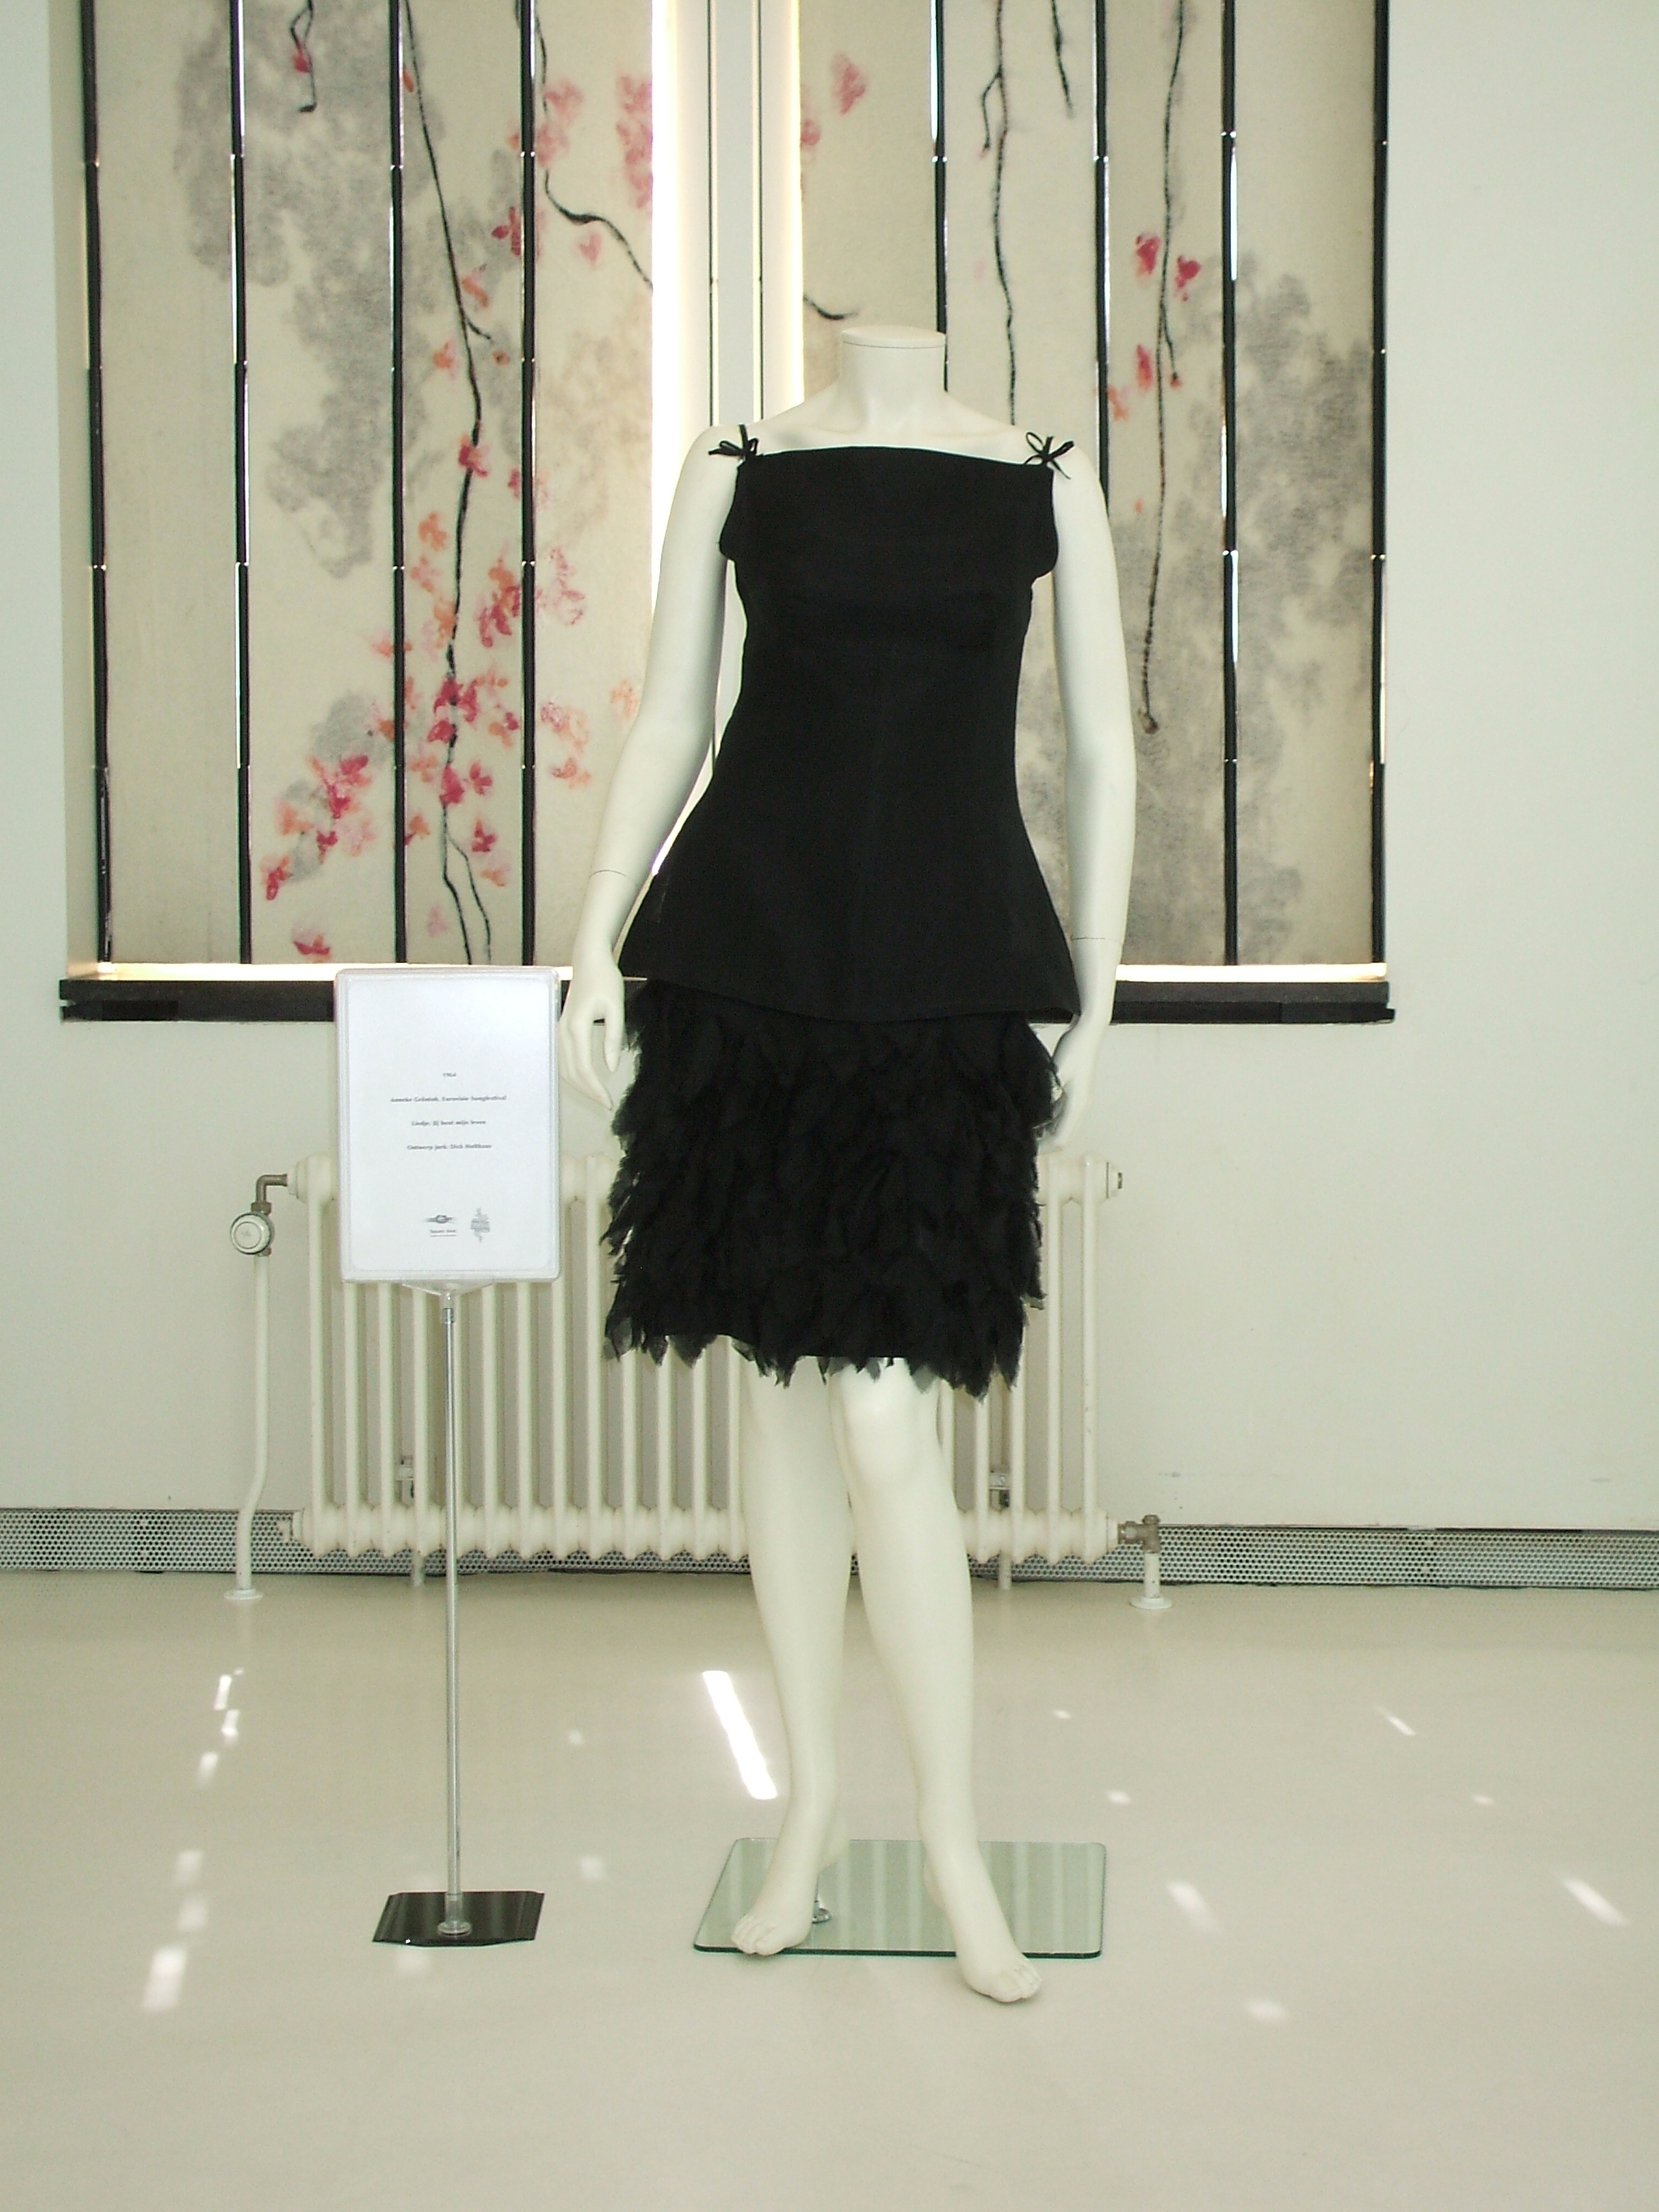 d989b47b637a Little black dress - Wikipedia